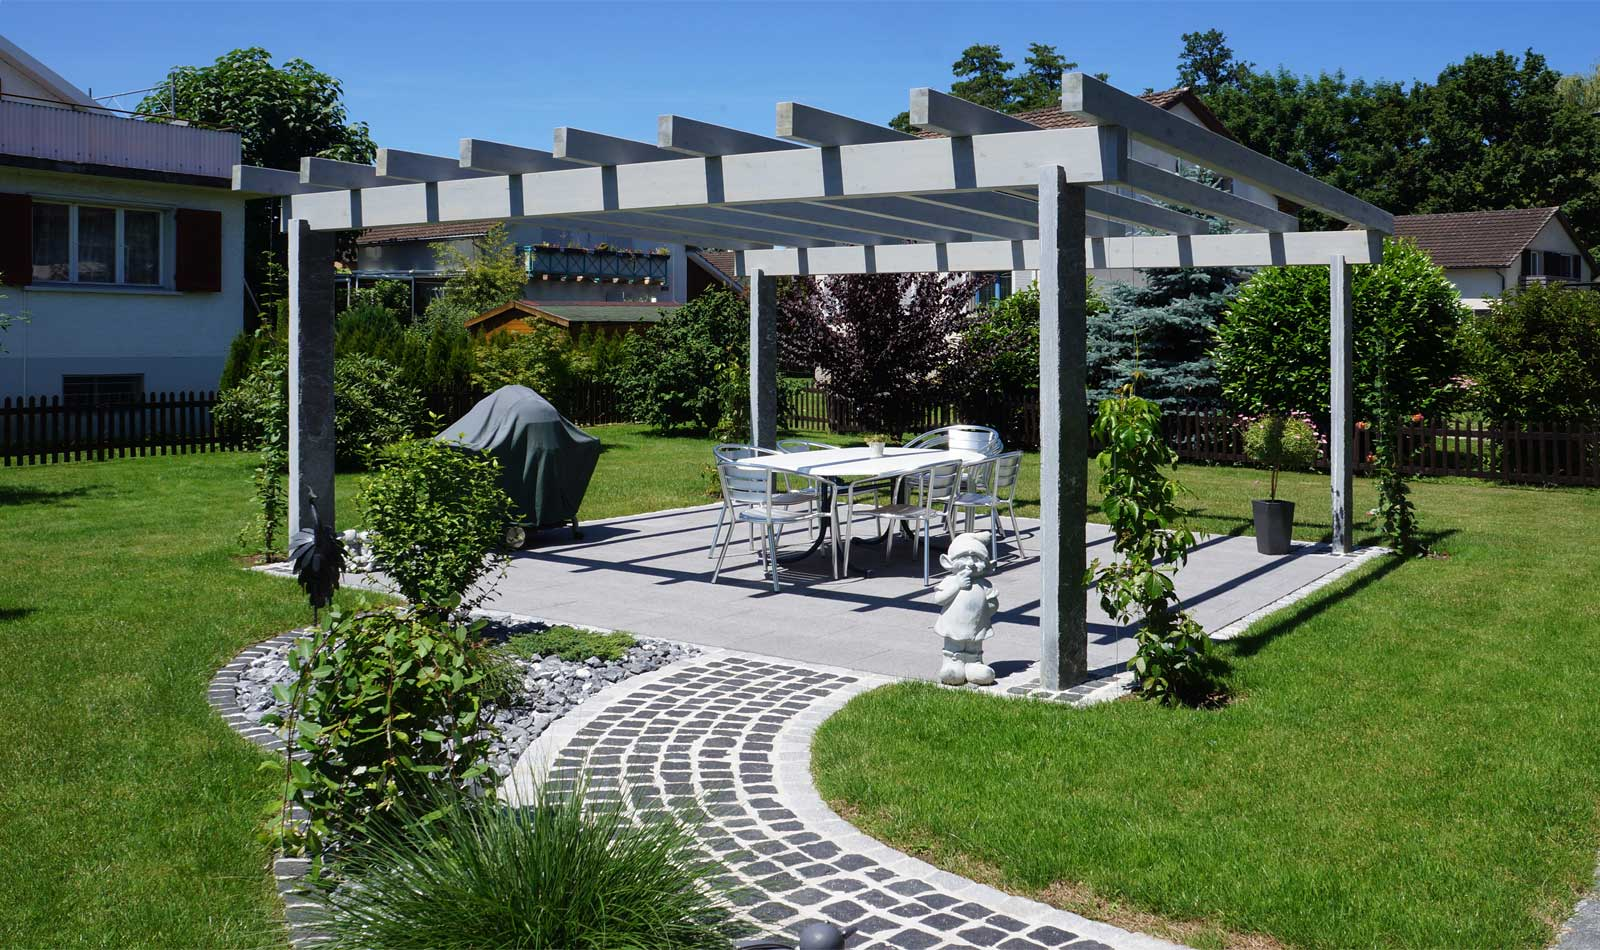 Pergola for garden seating by Glovital AG